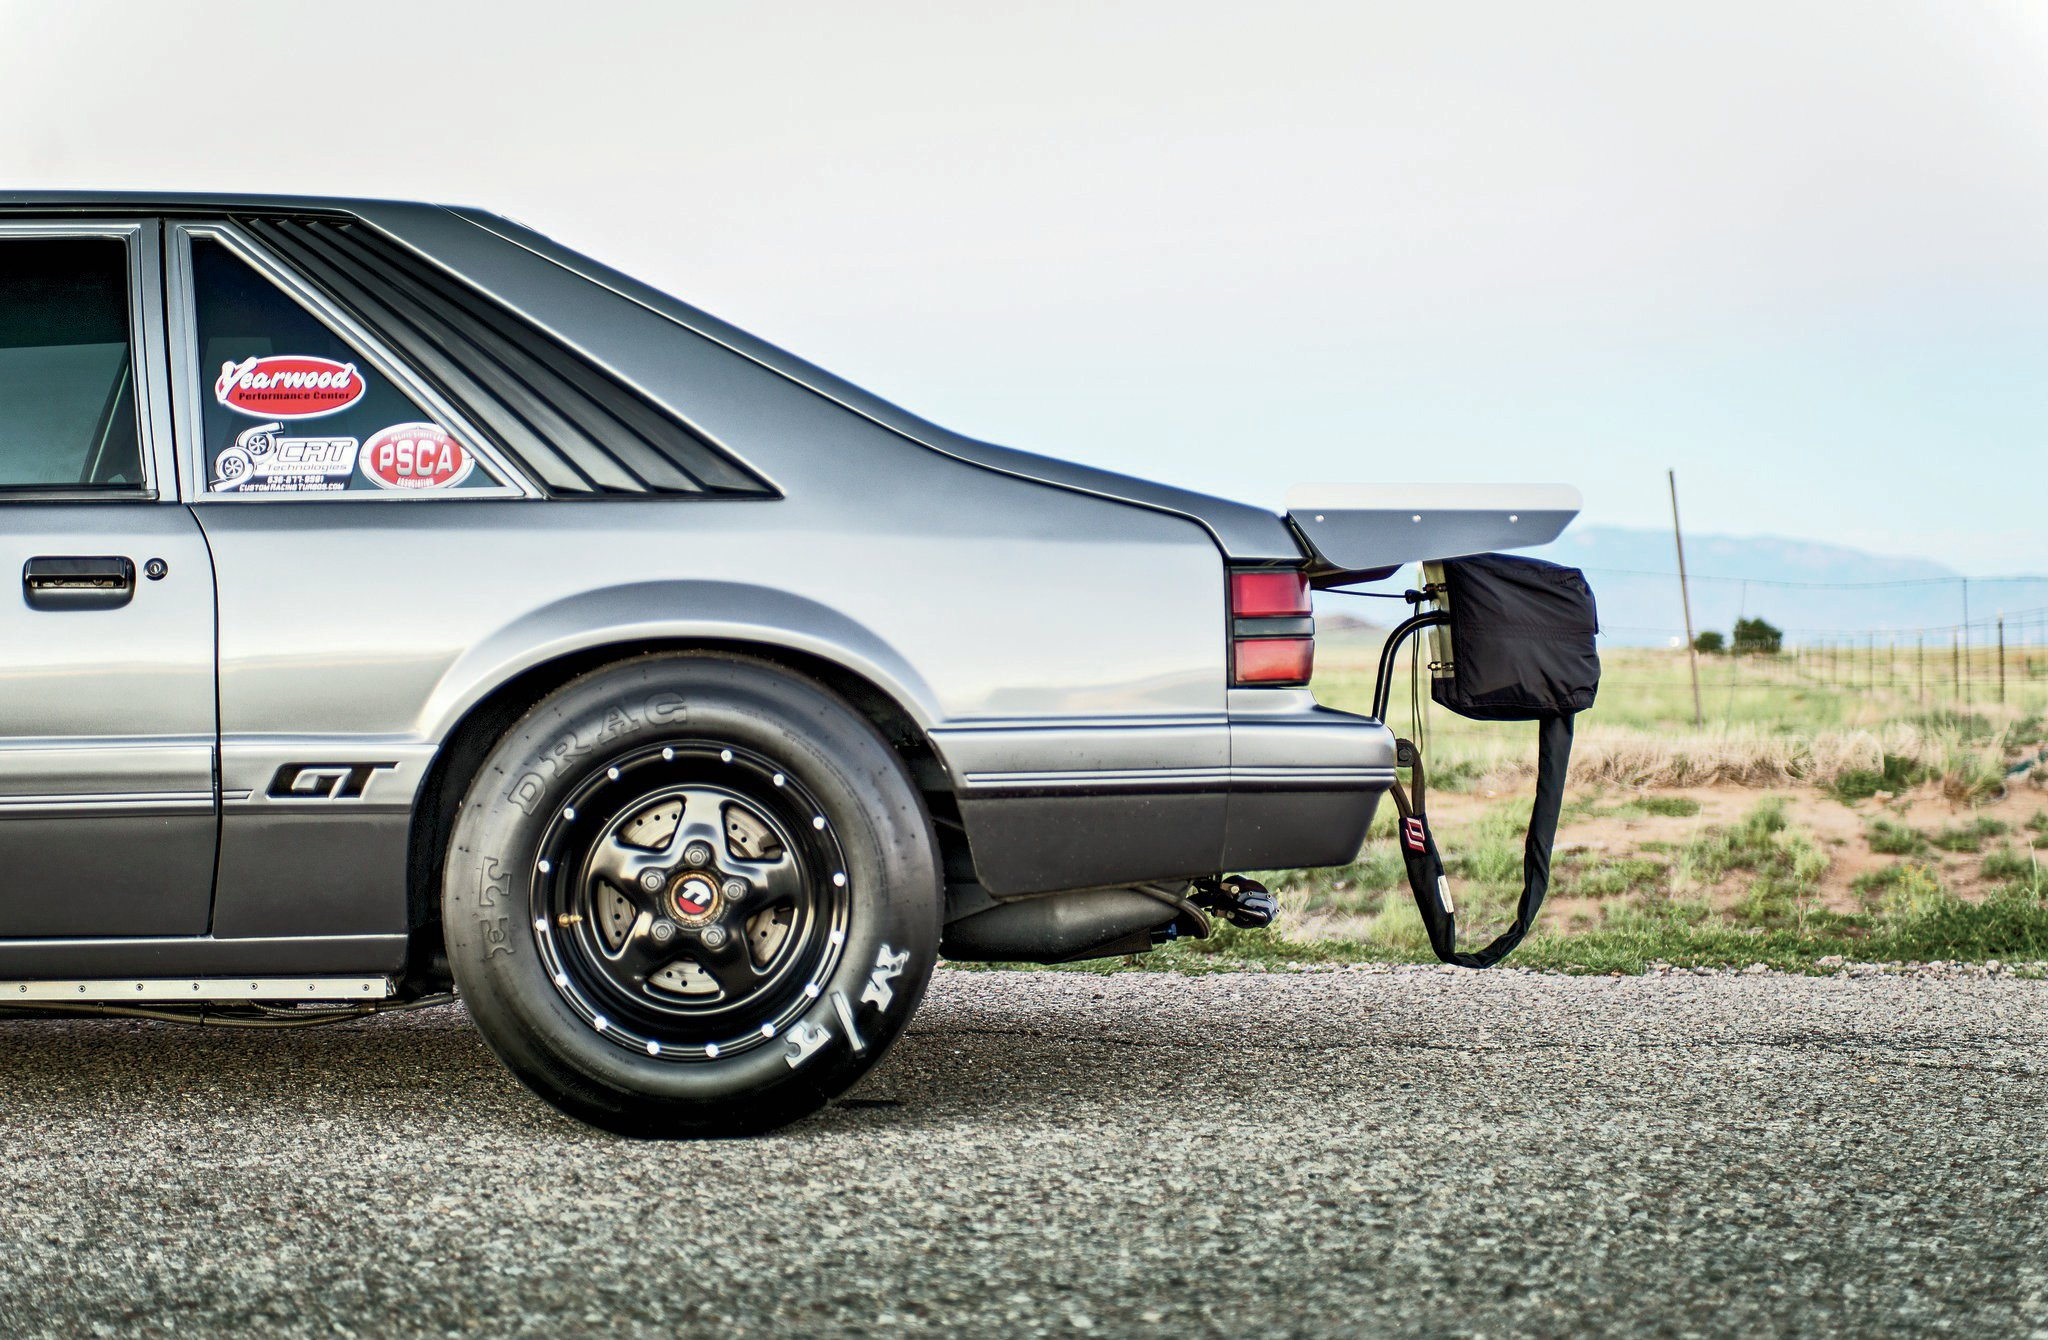 1986 Ford Mustang Gt Drivers Side View Rear